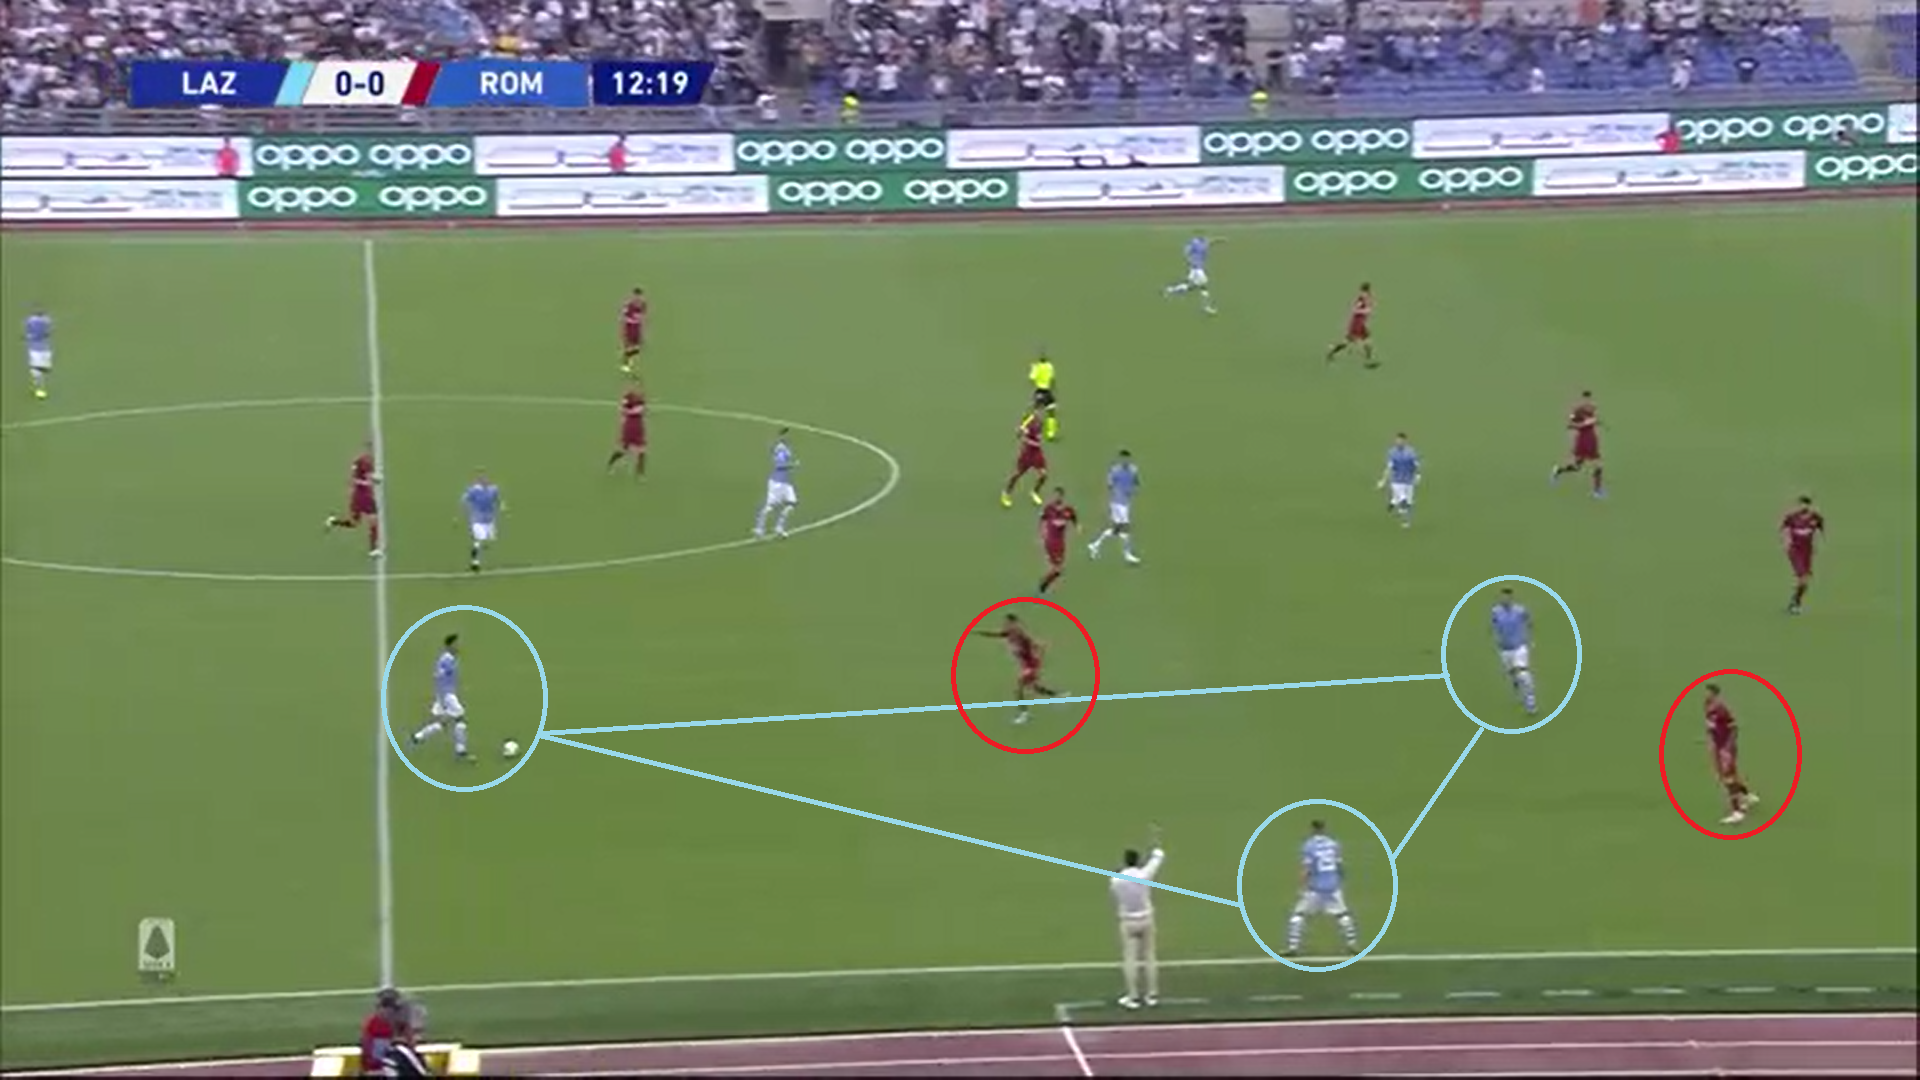 Serie A 2019/20: Lazio vs Roma tactical analysis tactics